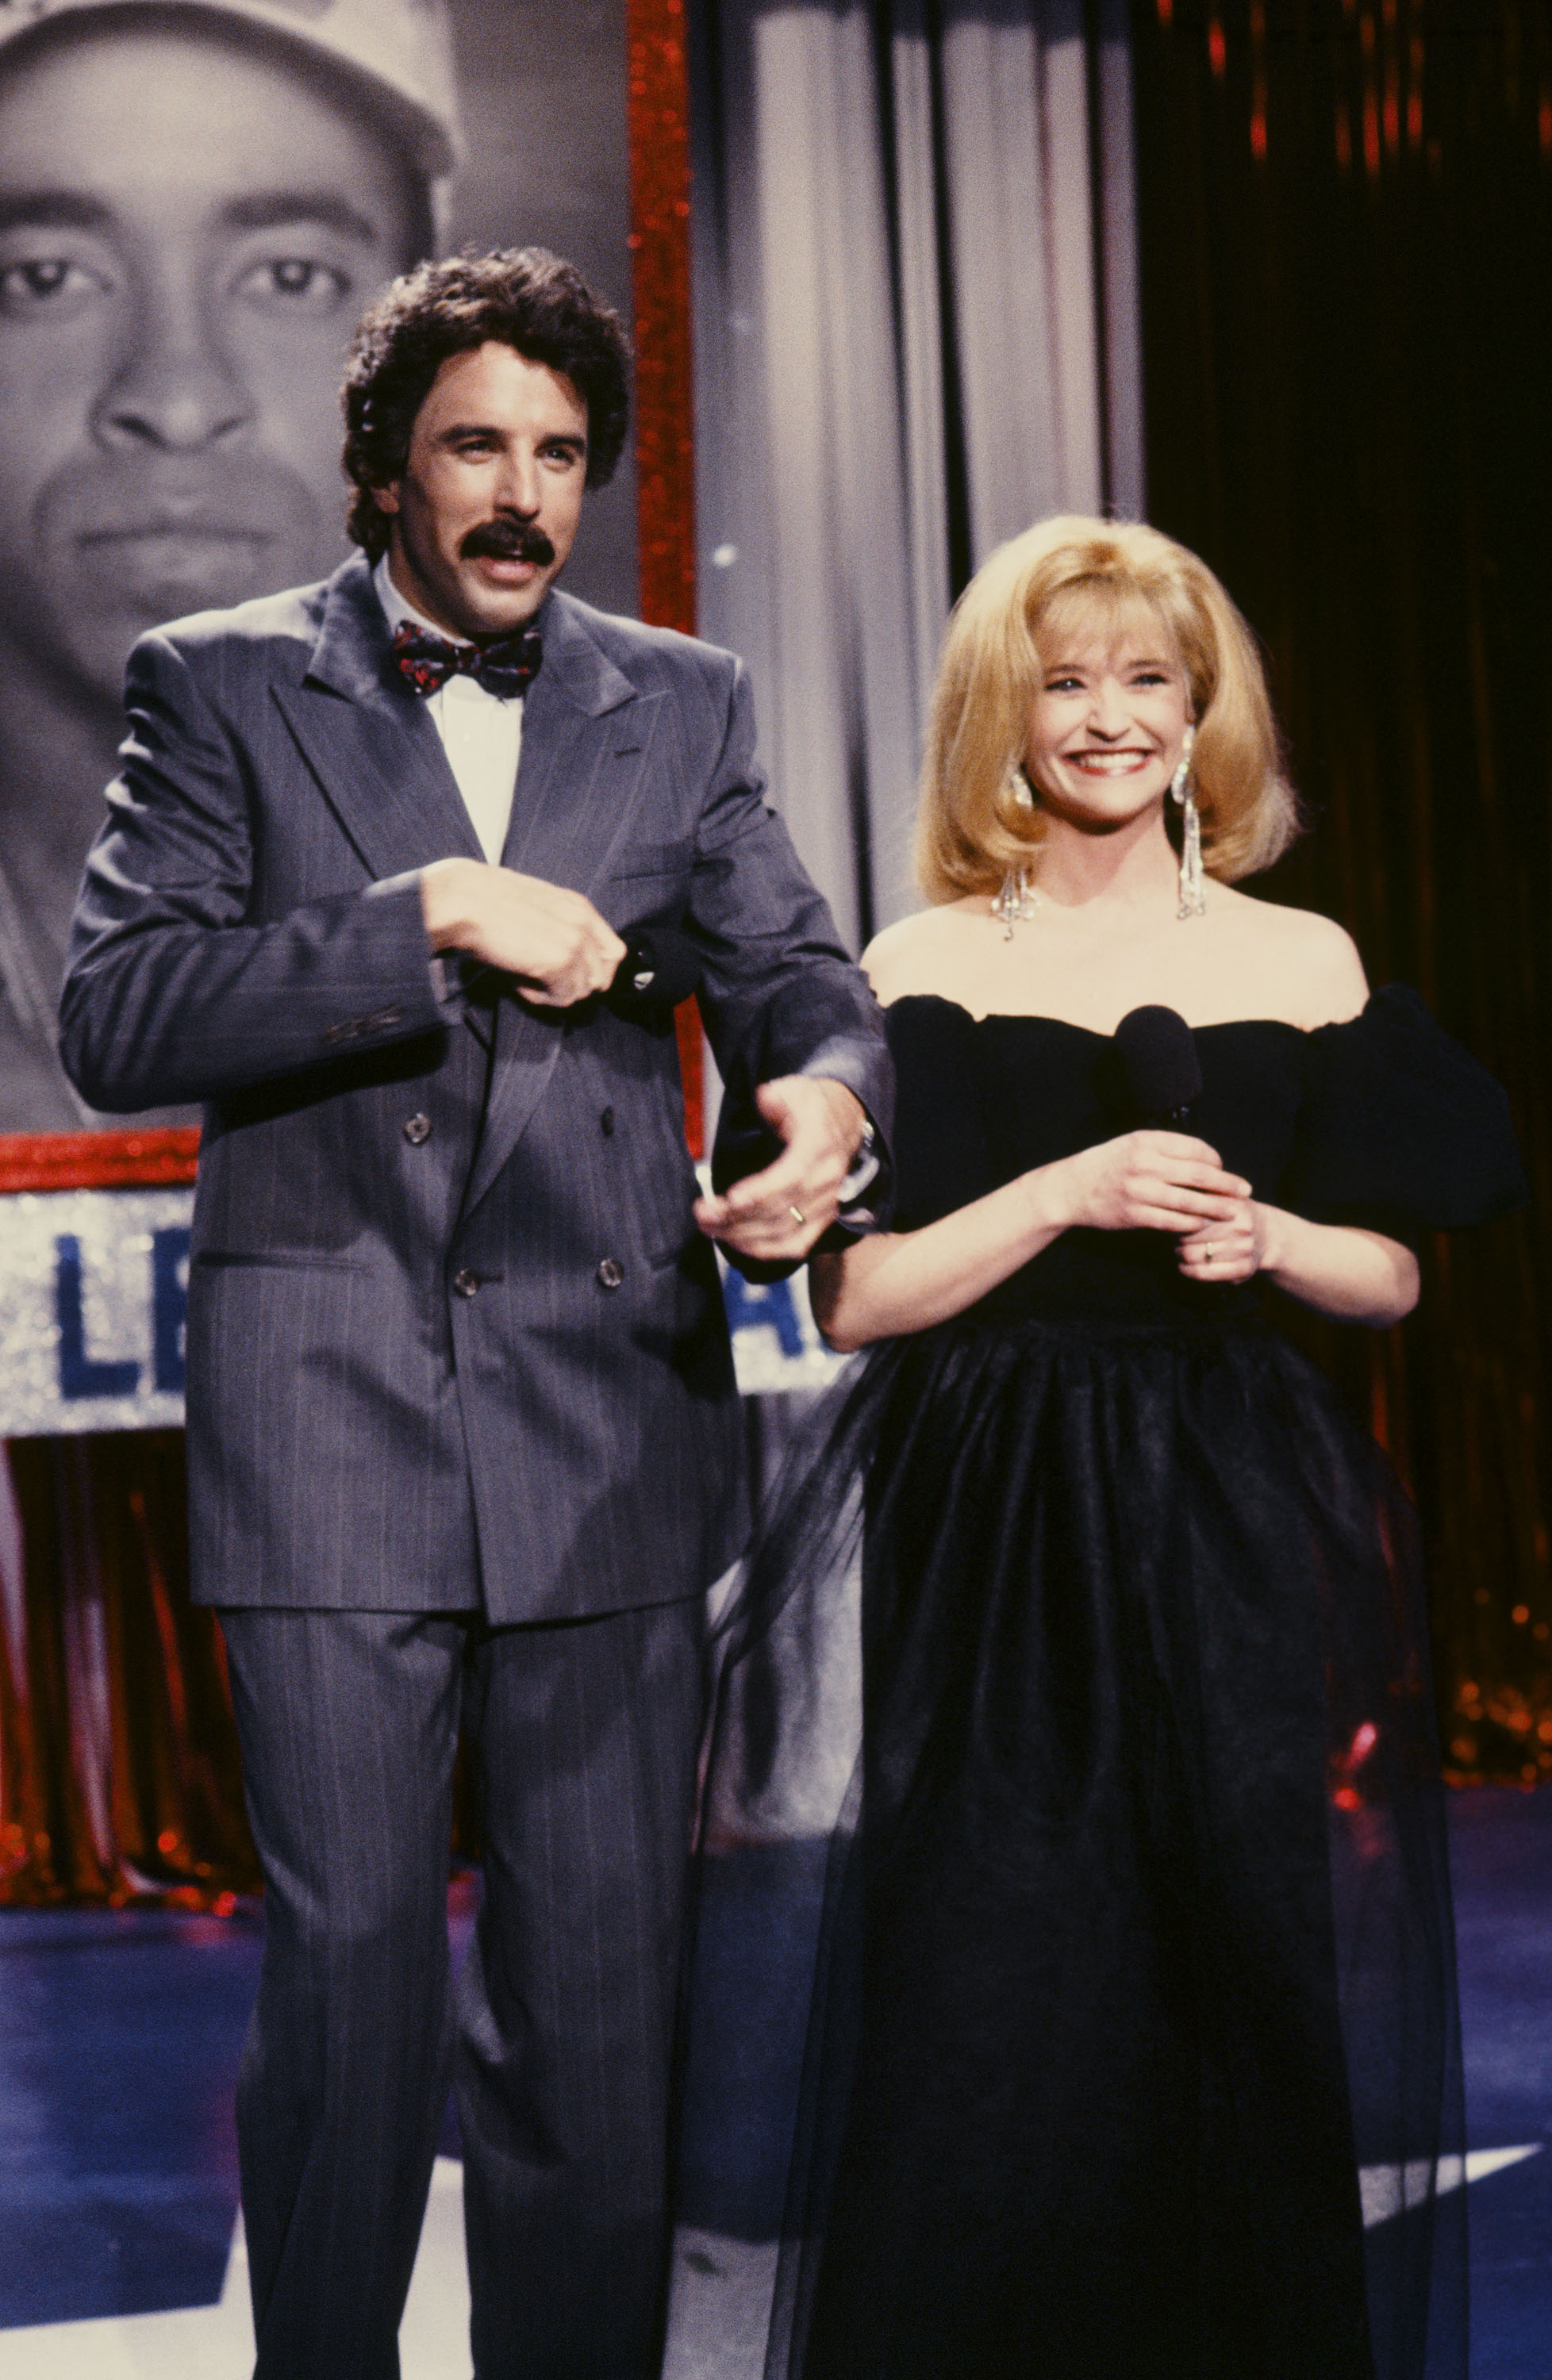 Kevin Nealon as Tom Selleck, Jan Hooks as Barbara Mandrell during the 'All Star Celebrity Tribute' skit on April 20, 1991.